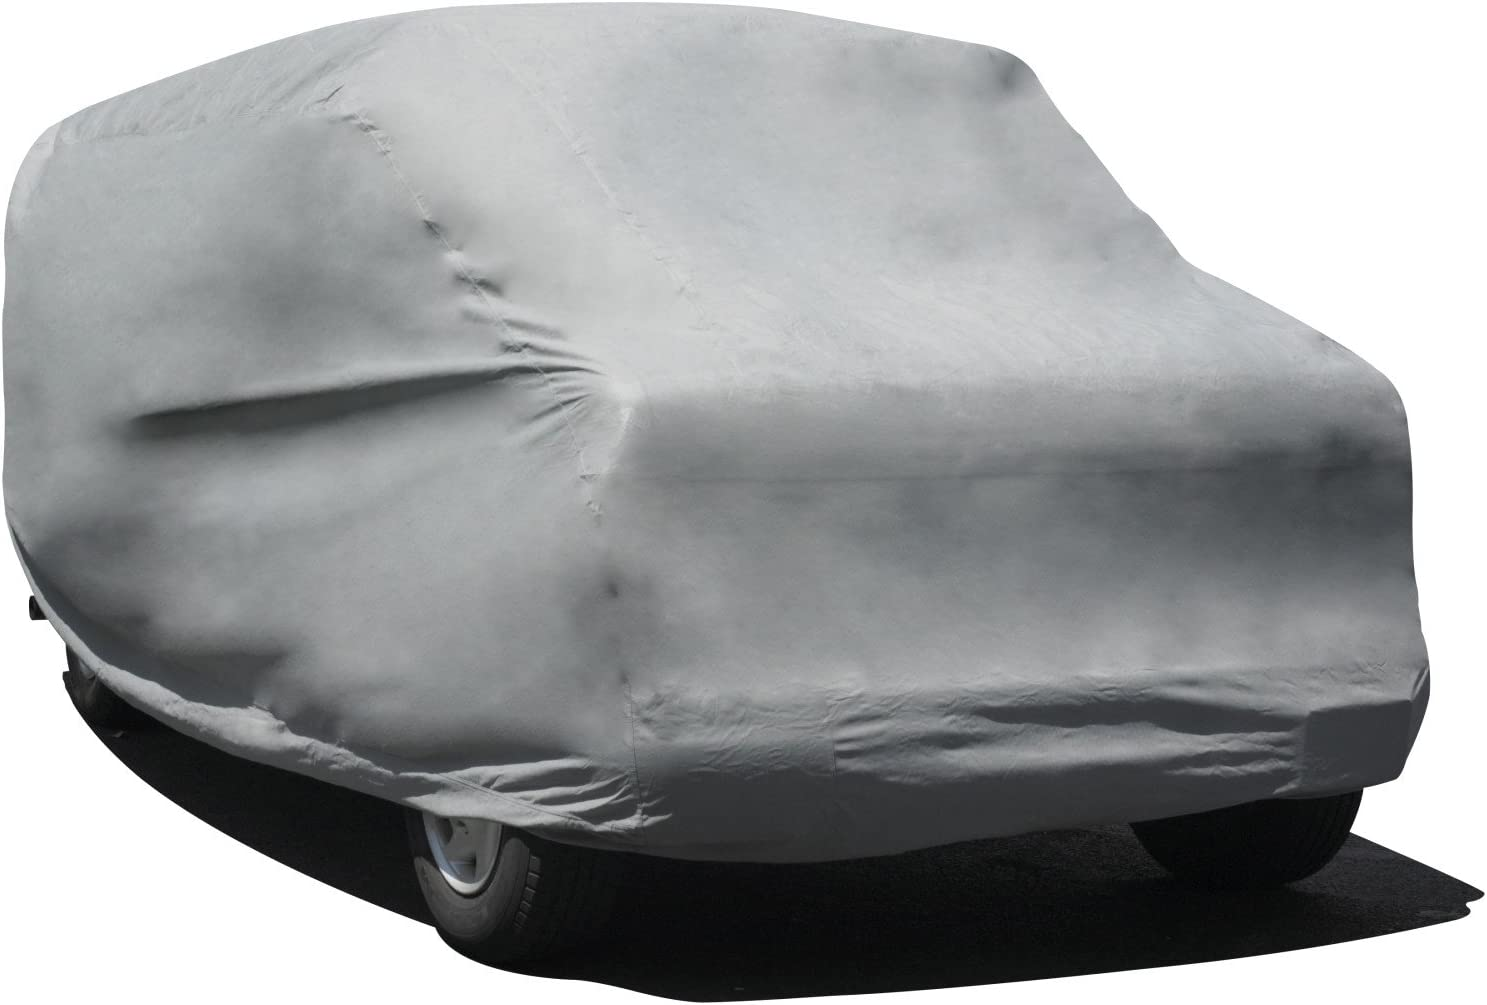 "Budge Rain Barrier Van Cover, Outdoor, Waterproof, Breathable, Van Cover fits Mini Vans up to 216"" L x 60"" W x 60"" H, Gray"